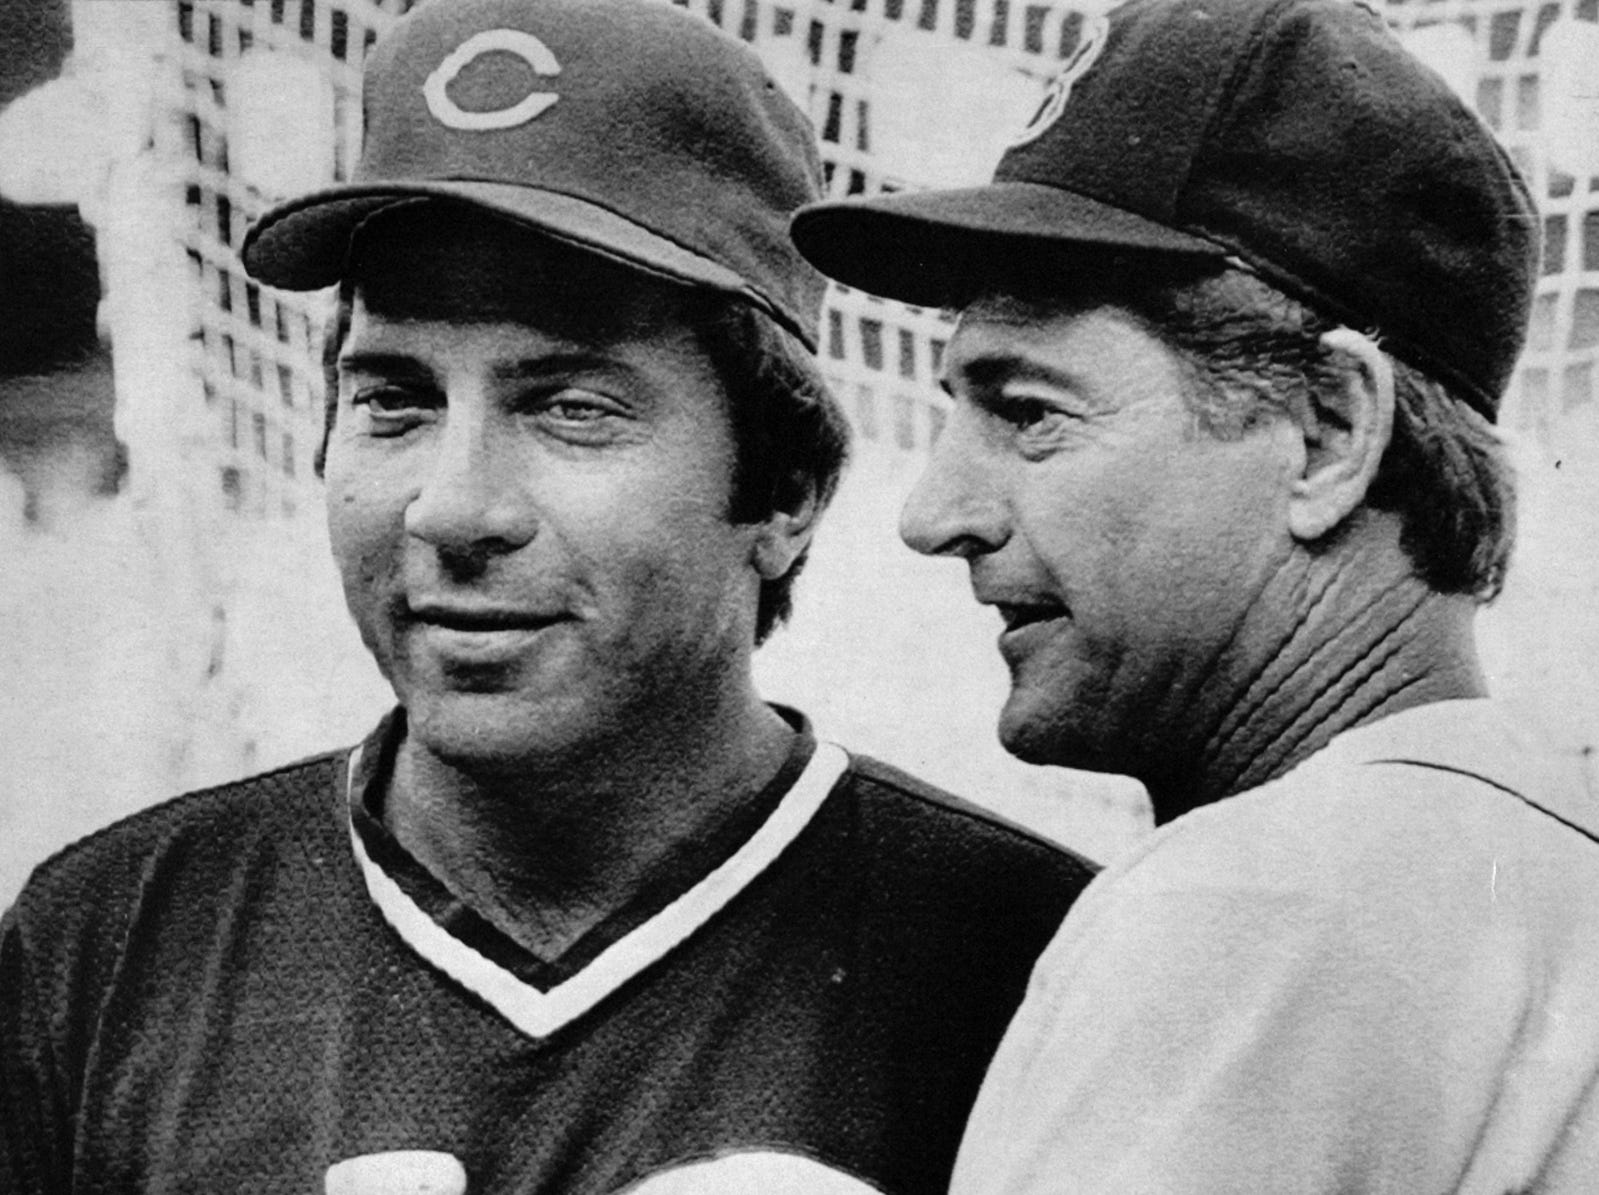 JULY 6, 1983: Johnny Bench, left, of the Reds, and Carl Yastrzemski, of the Red Sox, meet in the batting cage at Comiskey Park in Chicago Wednesday. Bench is playing with the National League and Yastrzemski is playing for the American League in tonight's All-Star game. Both players are retiring at the end of this year. AP Photo/John Swart scanned August 6, 2013 FROM A SUNDAY SEPTEMBER 11, 1983 CAPTION: Bench and Yaz were chosen as honorary members of the 1983 All-Star team.